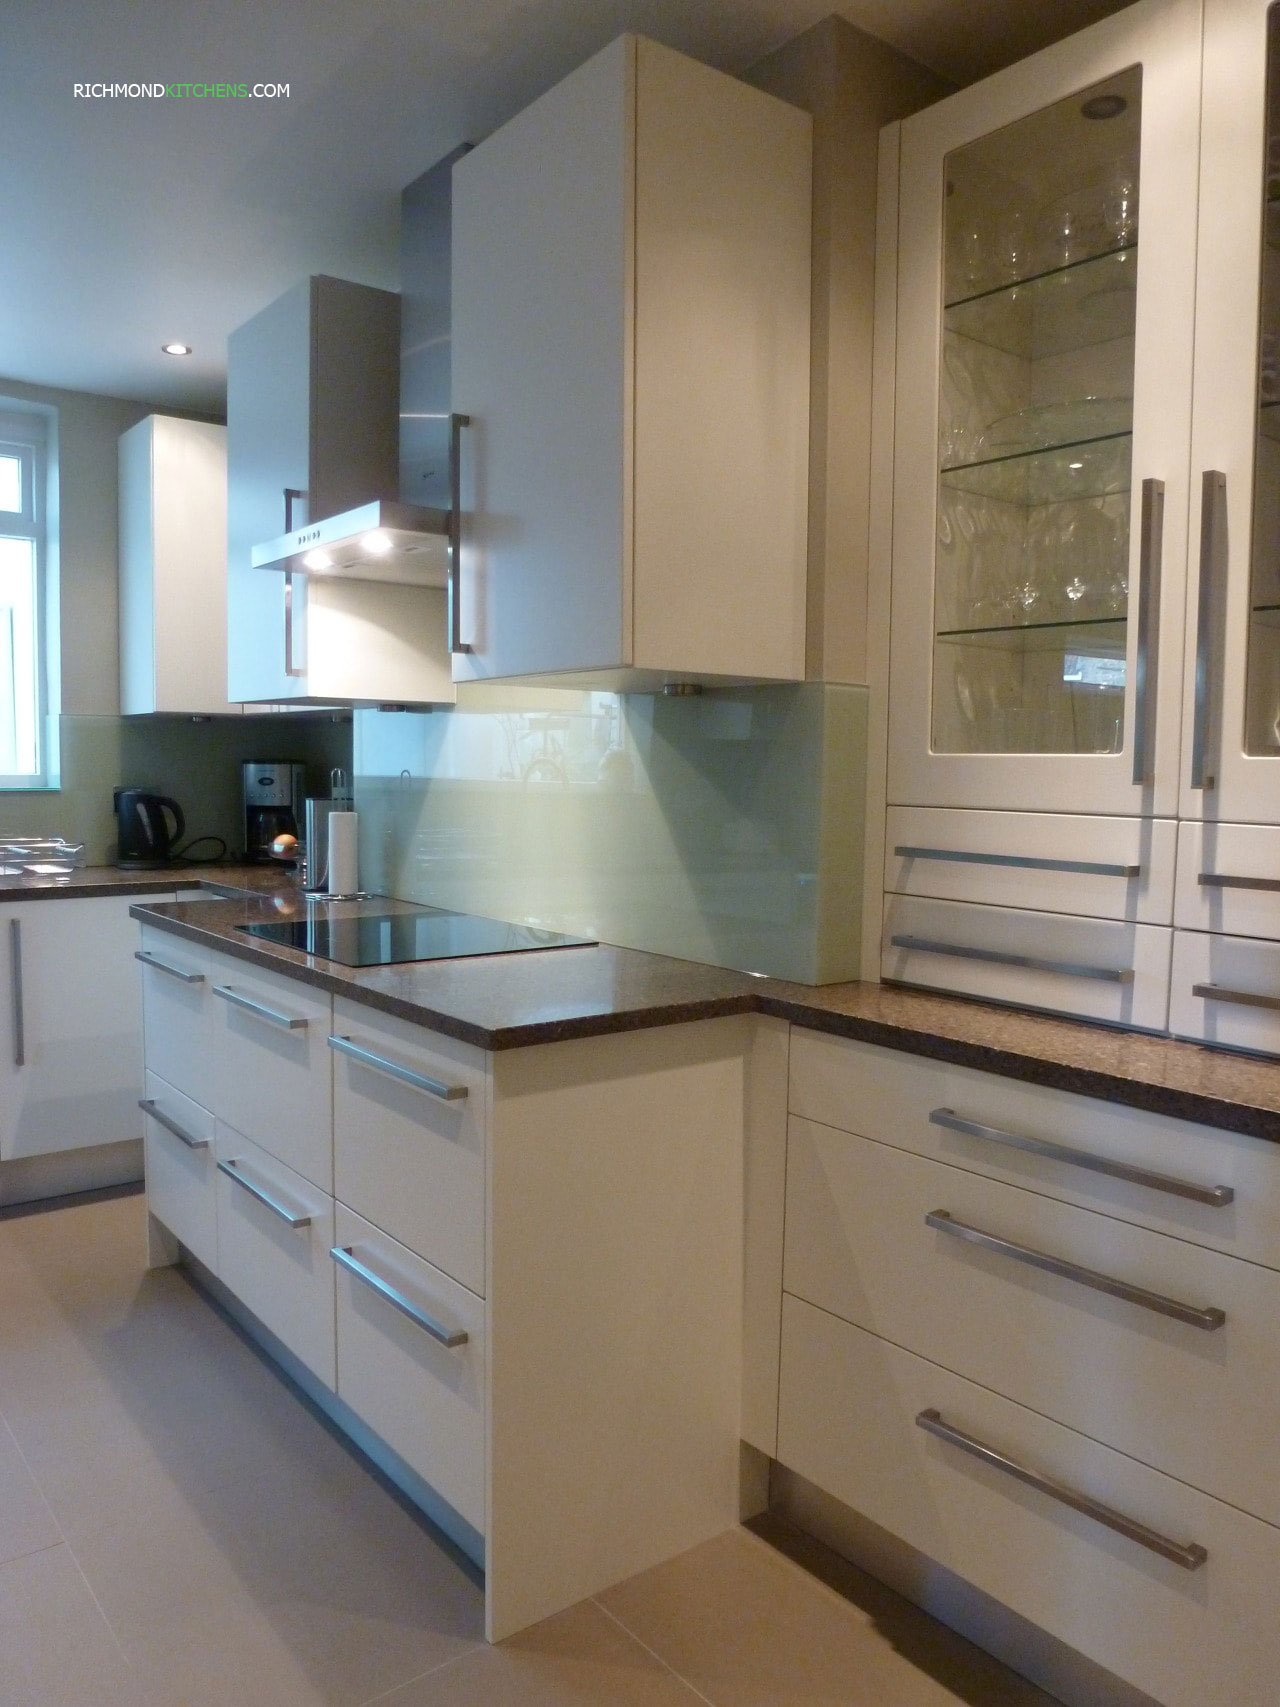 Kitchen showroom chiswick west london richmond kitchens for New kitchen london